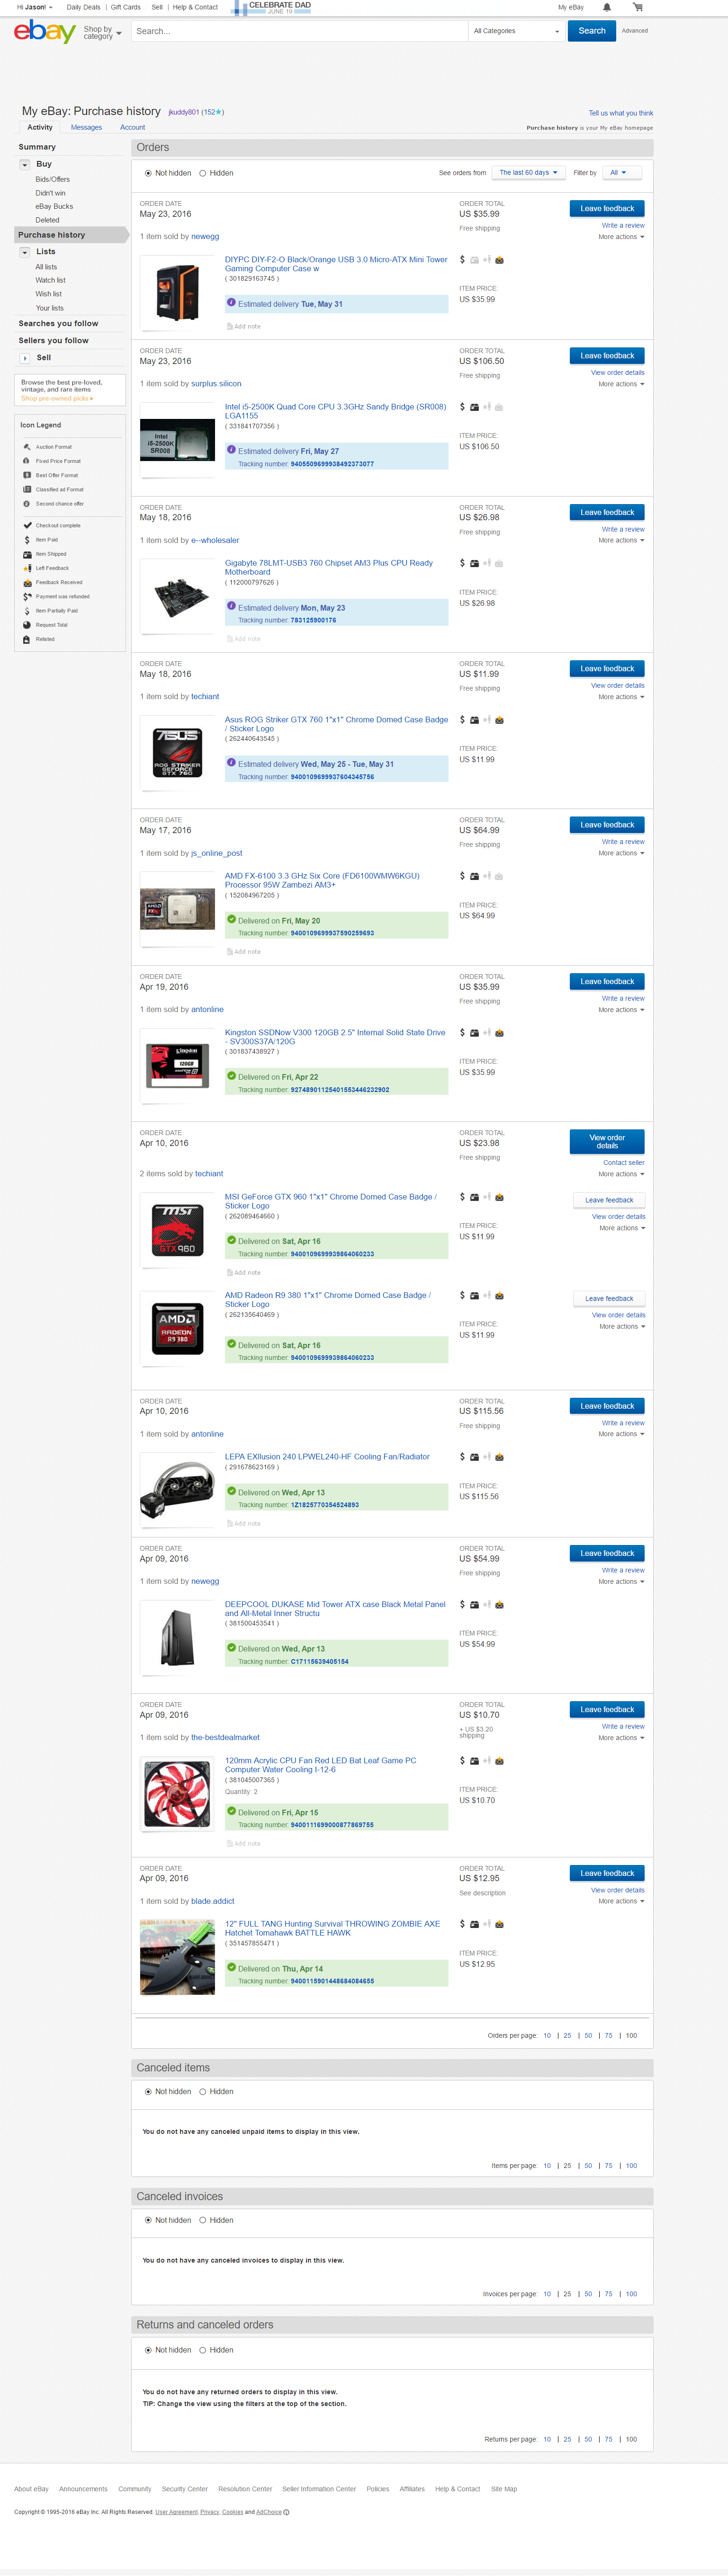 Just some Deals people may find interesting or curious to know about. Also Just an easy way to keep track of my Business Purchases/Inventory+Marketing for people to see to hand pick out what they want for any given build they may have in mind too.